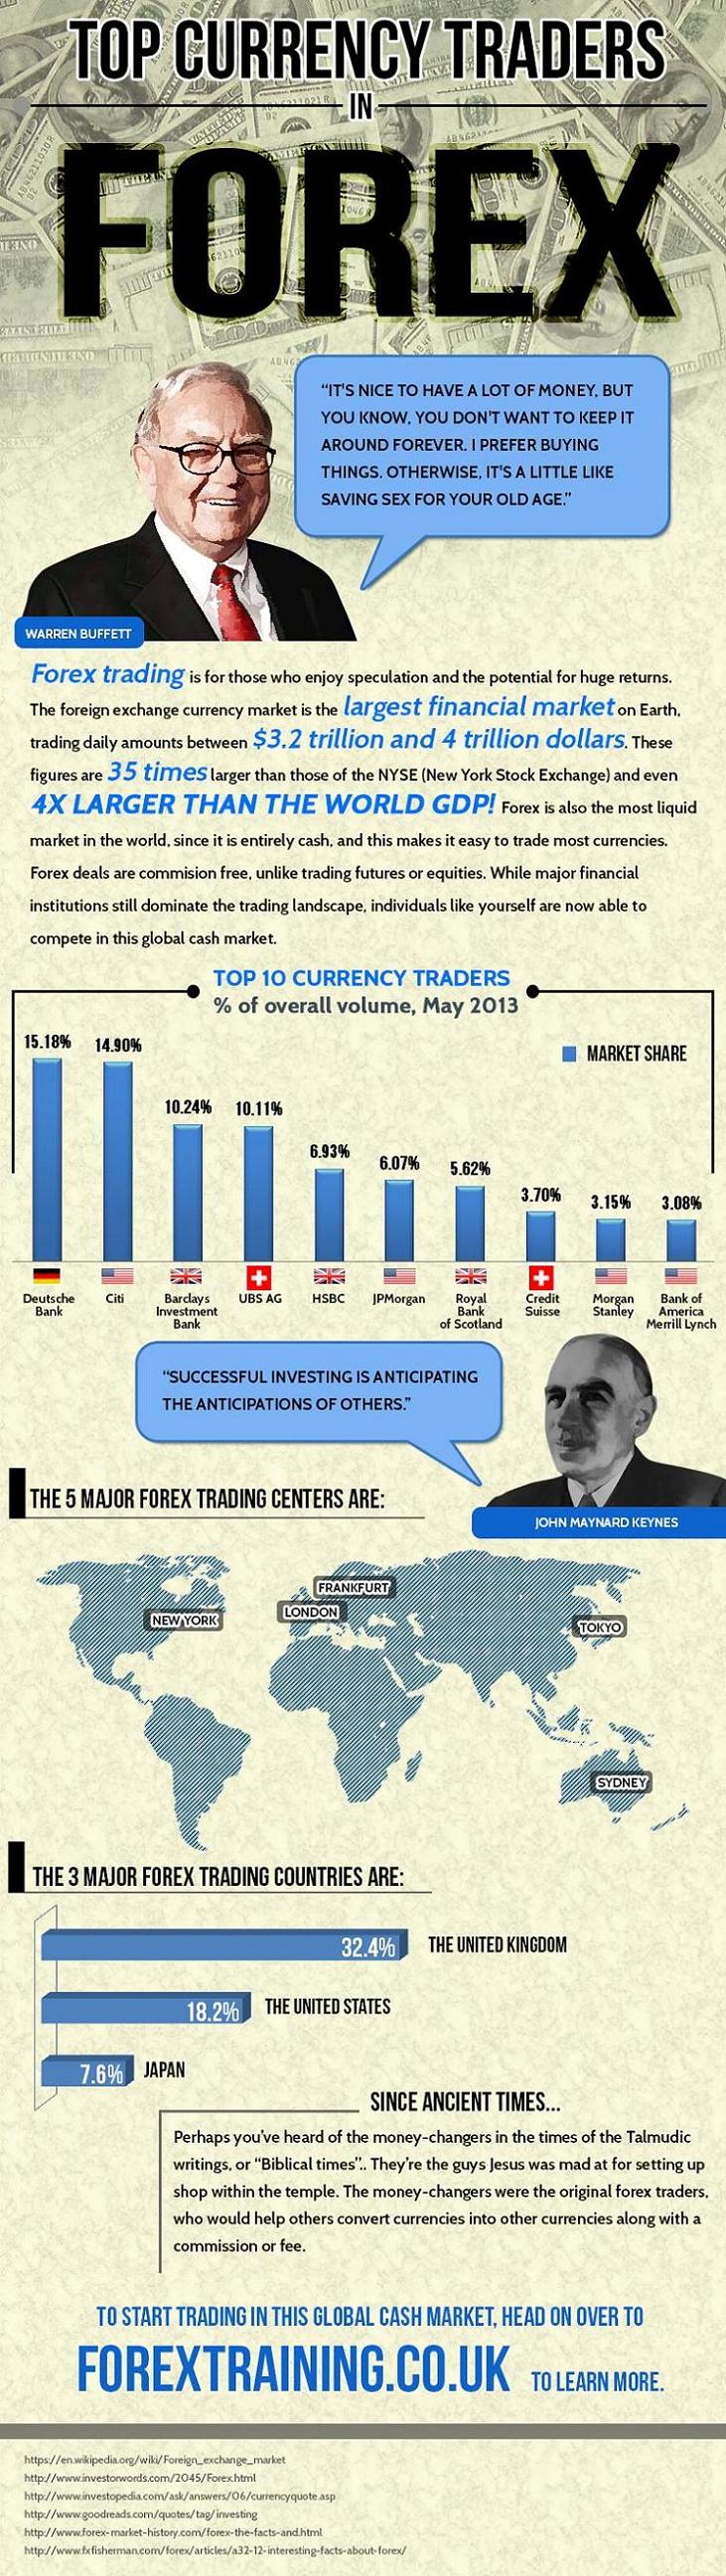 Top forex traders in the world